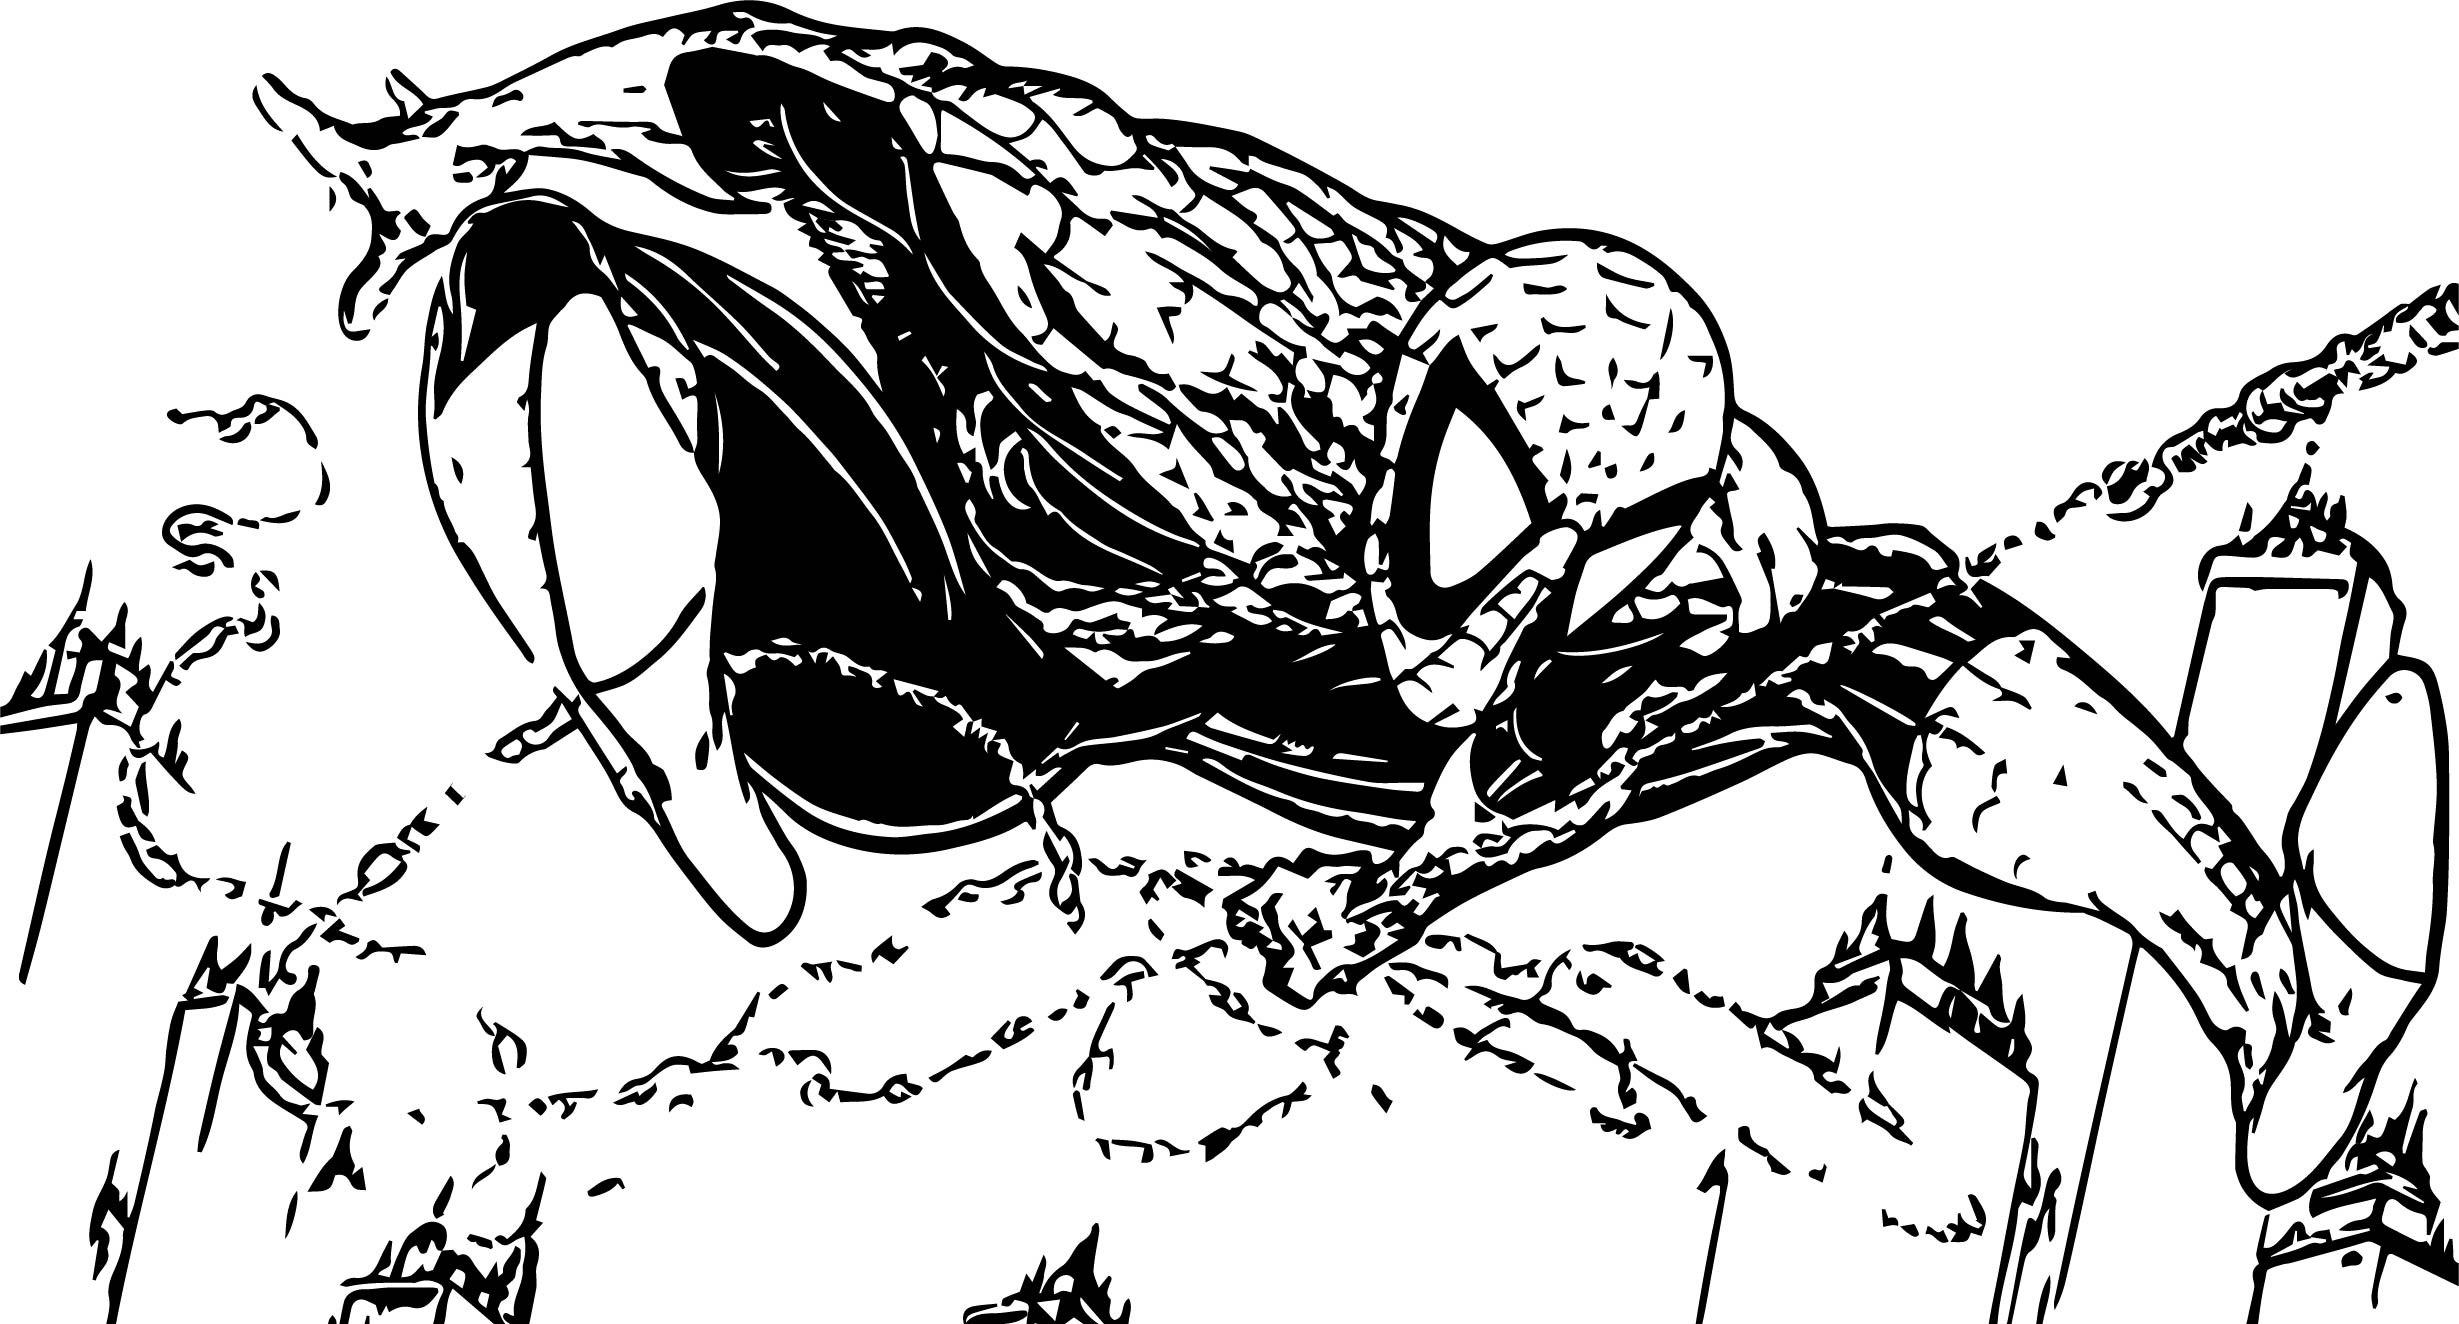 spiderman cartoon coloring pages - spiderman cartoon full size spider man coloring page